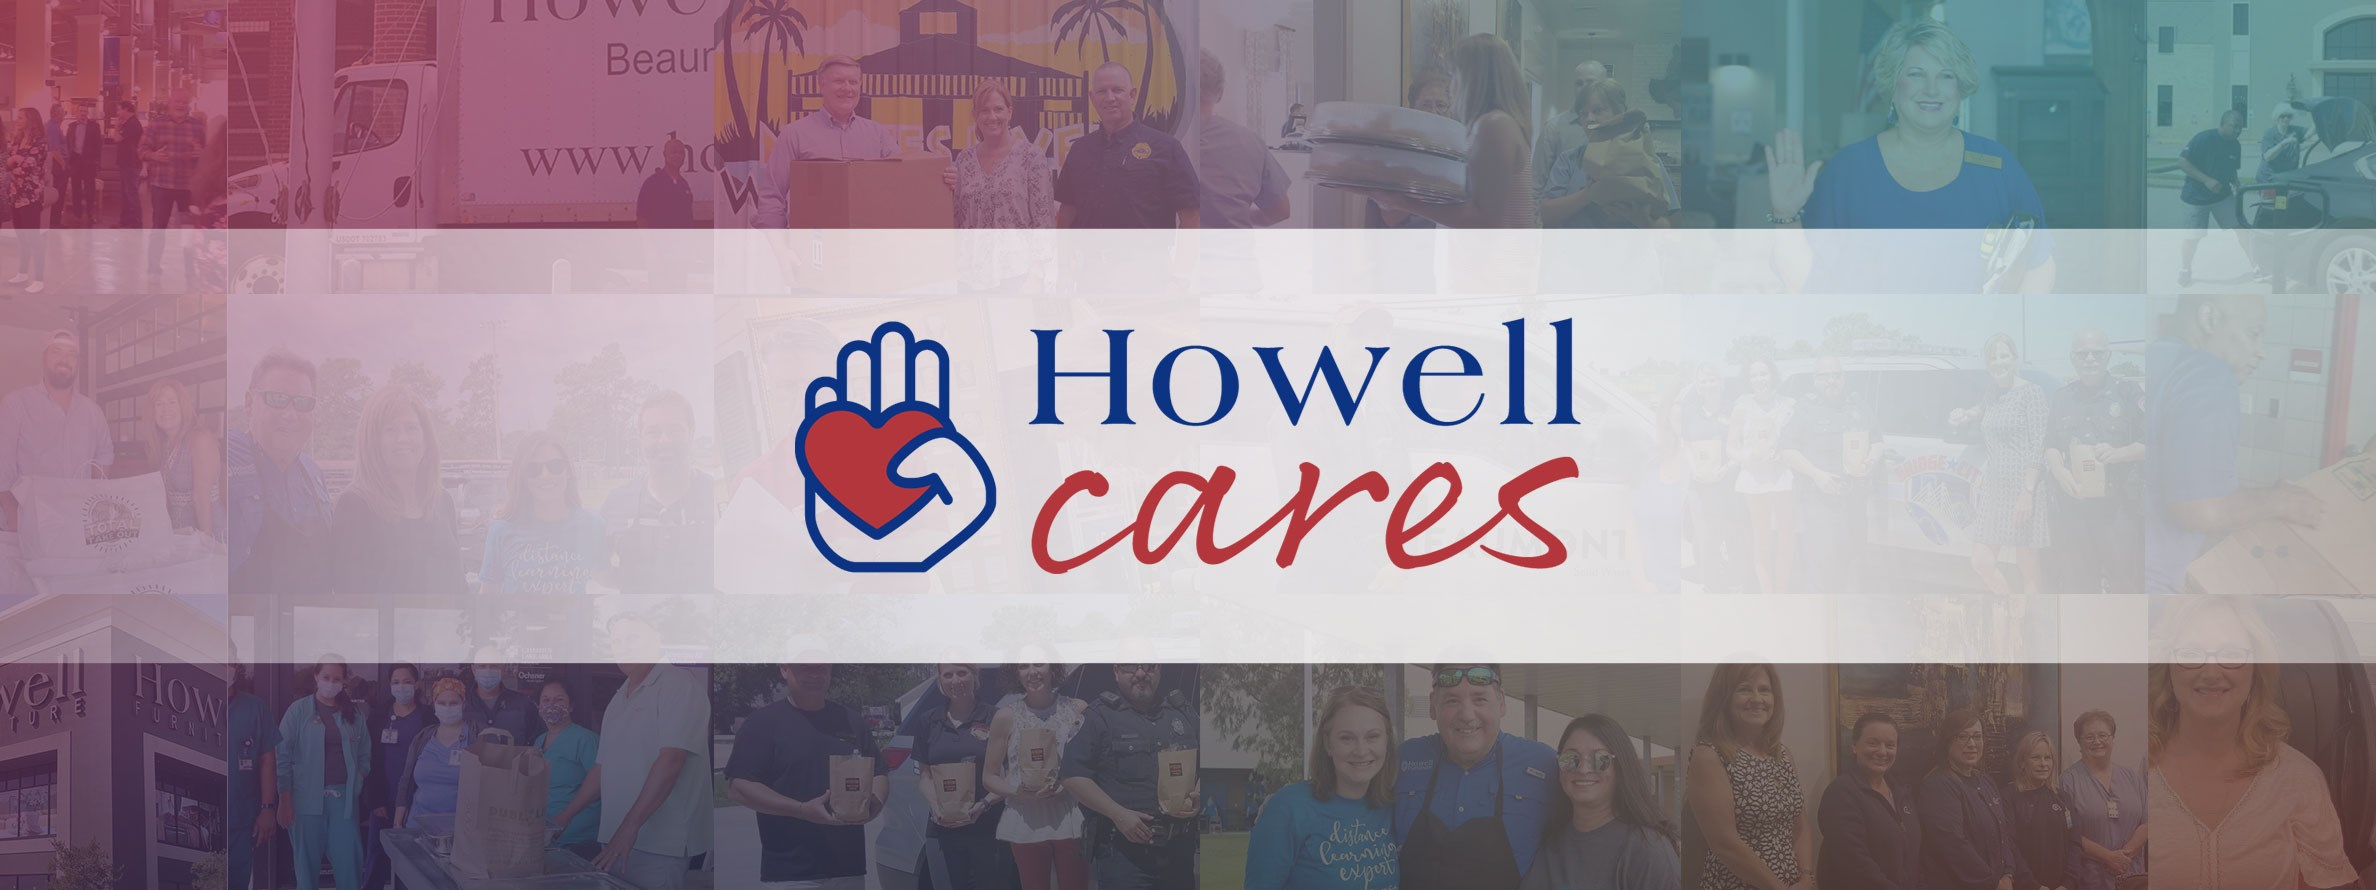 howells cares, scroll to learn more